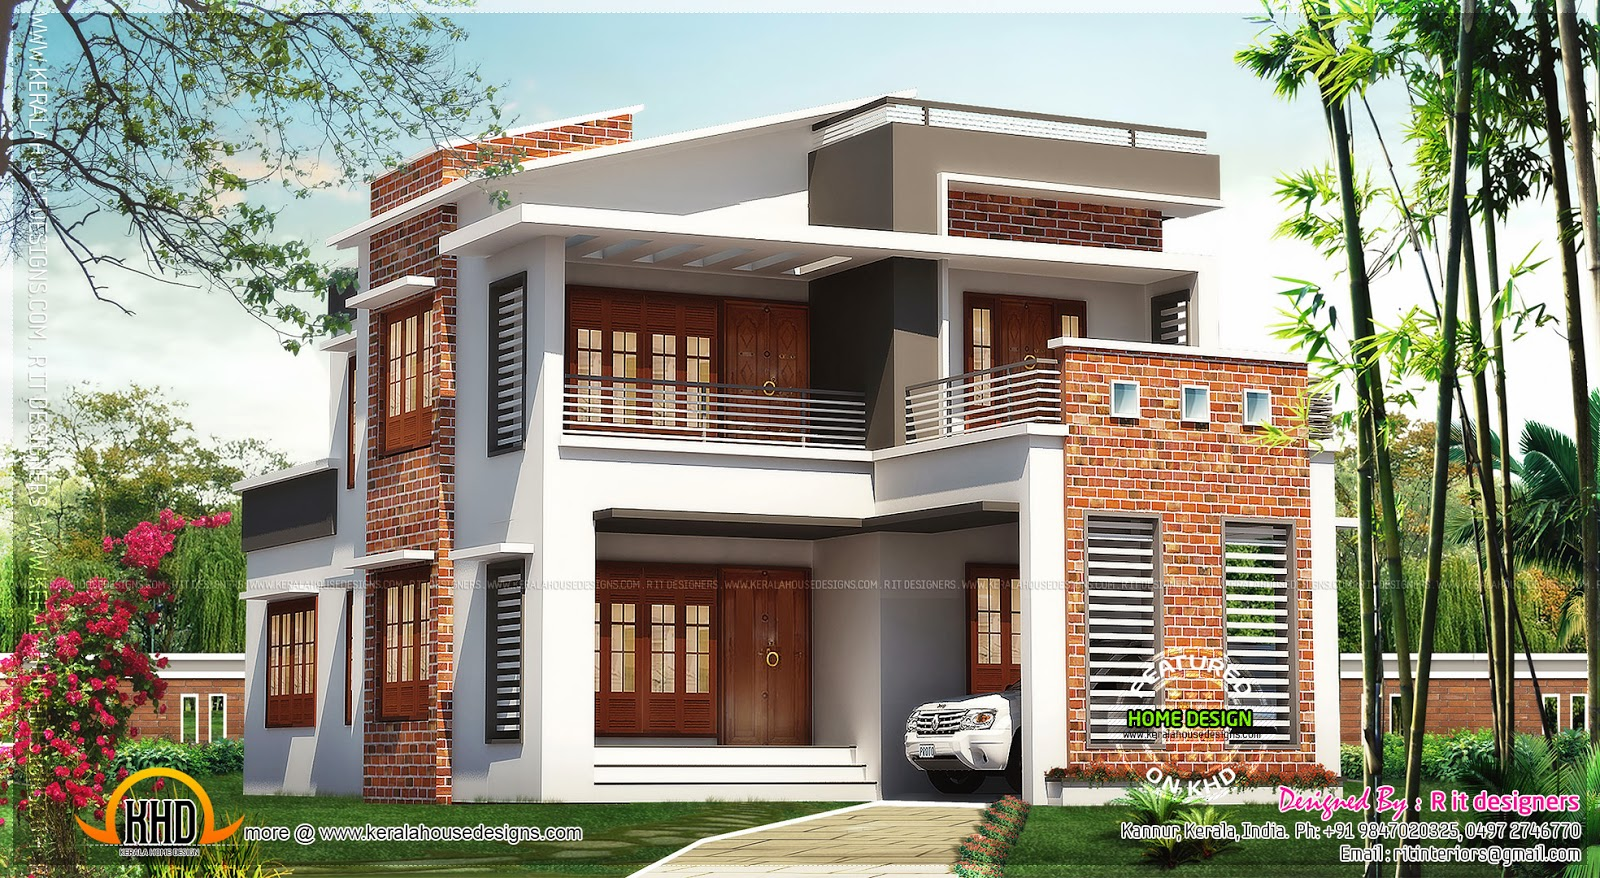 Brick mix house exterior design kerala home design and for Exterior house plans